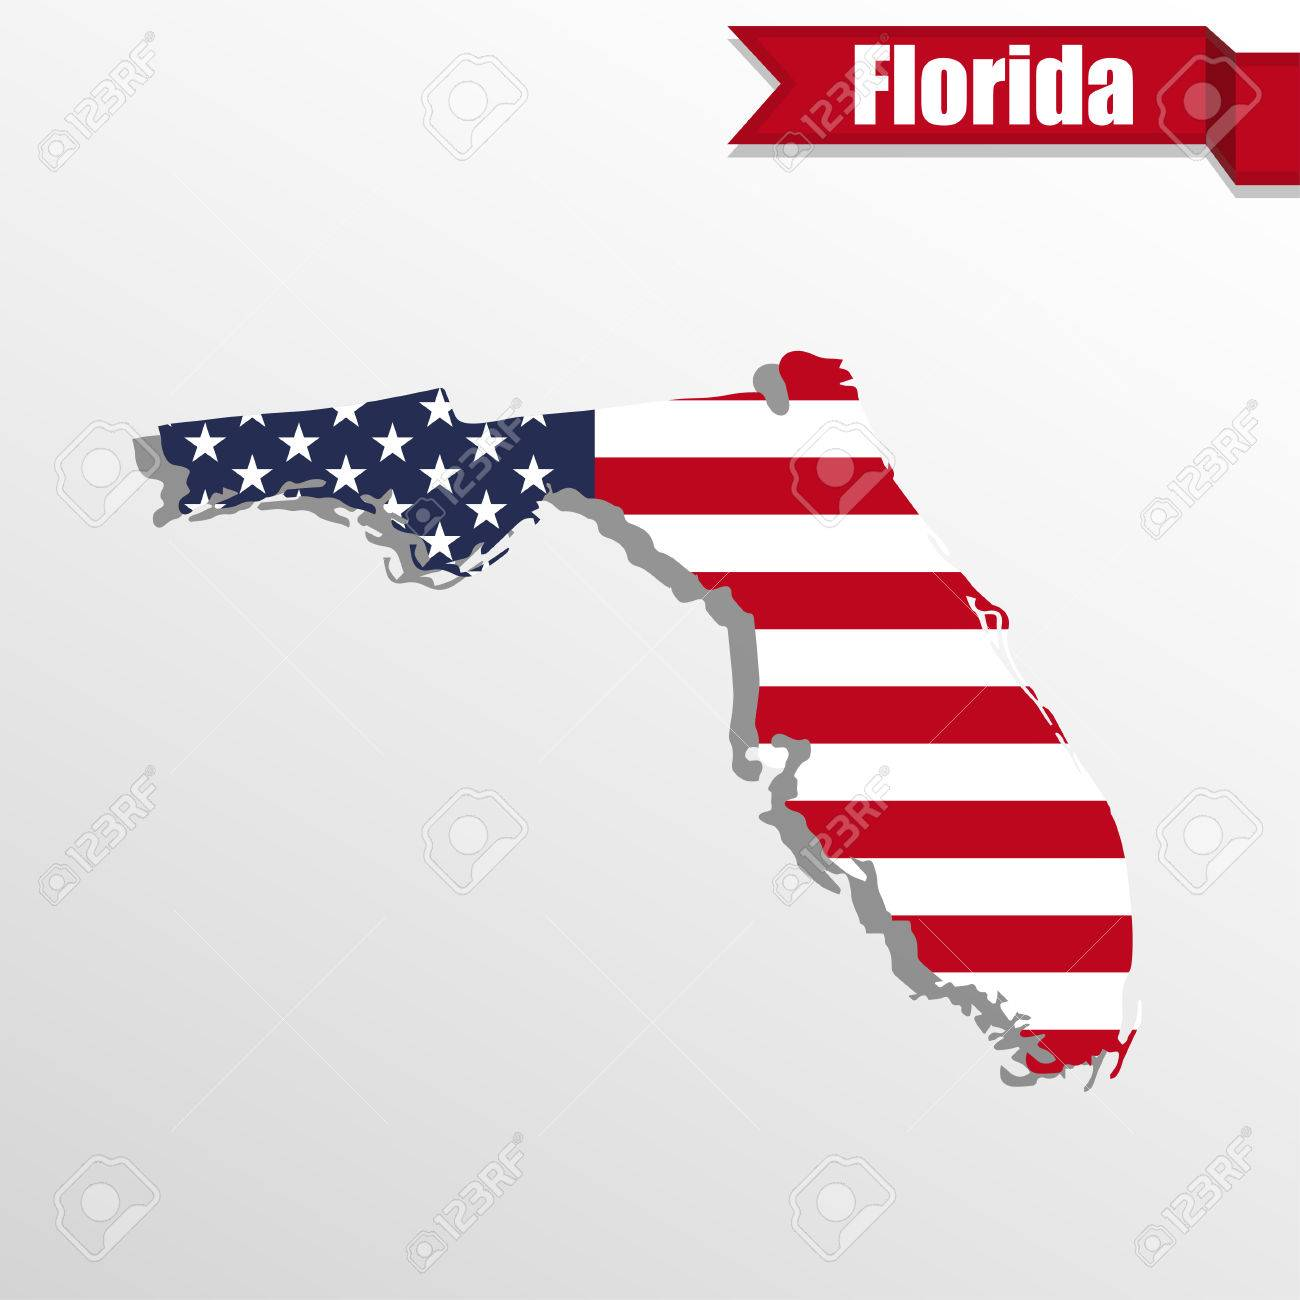 Florida State Map With Us Flag Inside And Ribbon Royalty Free